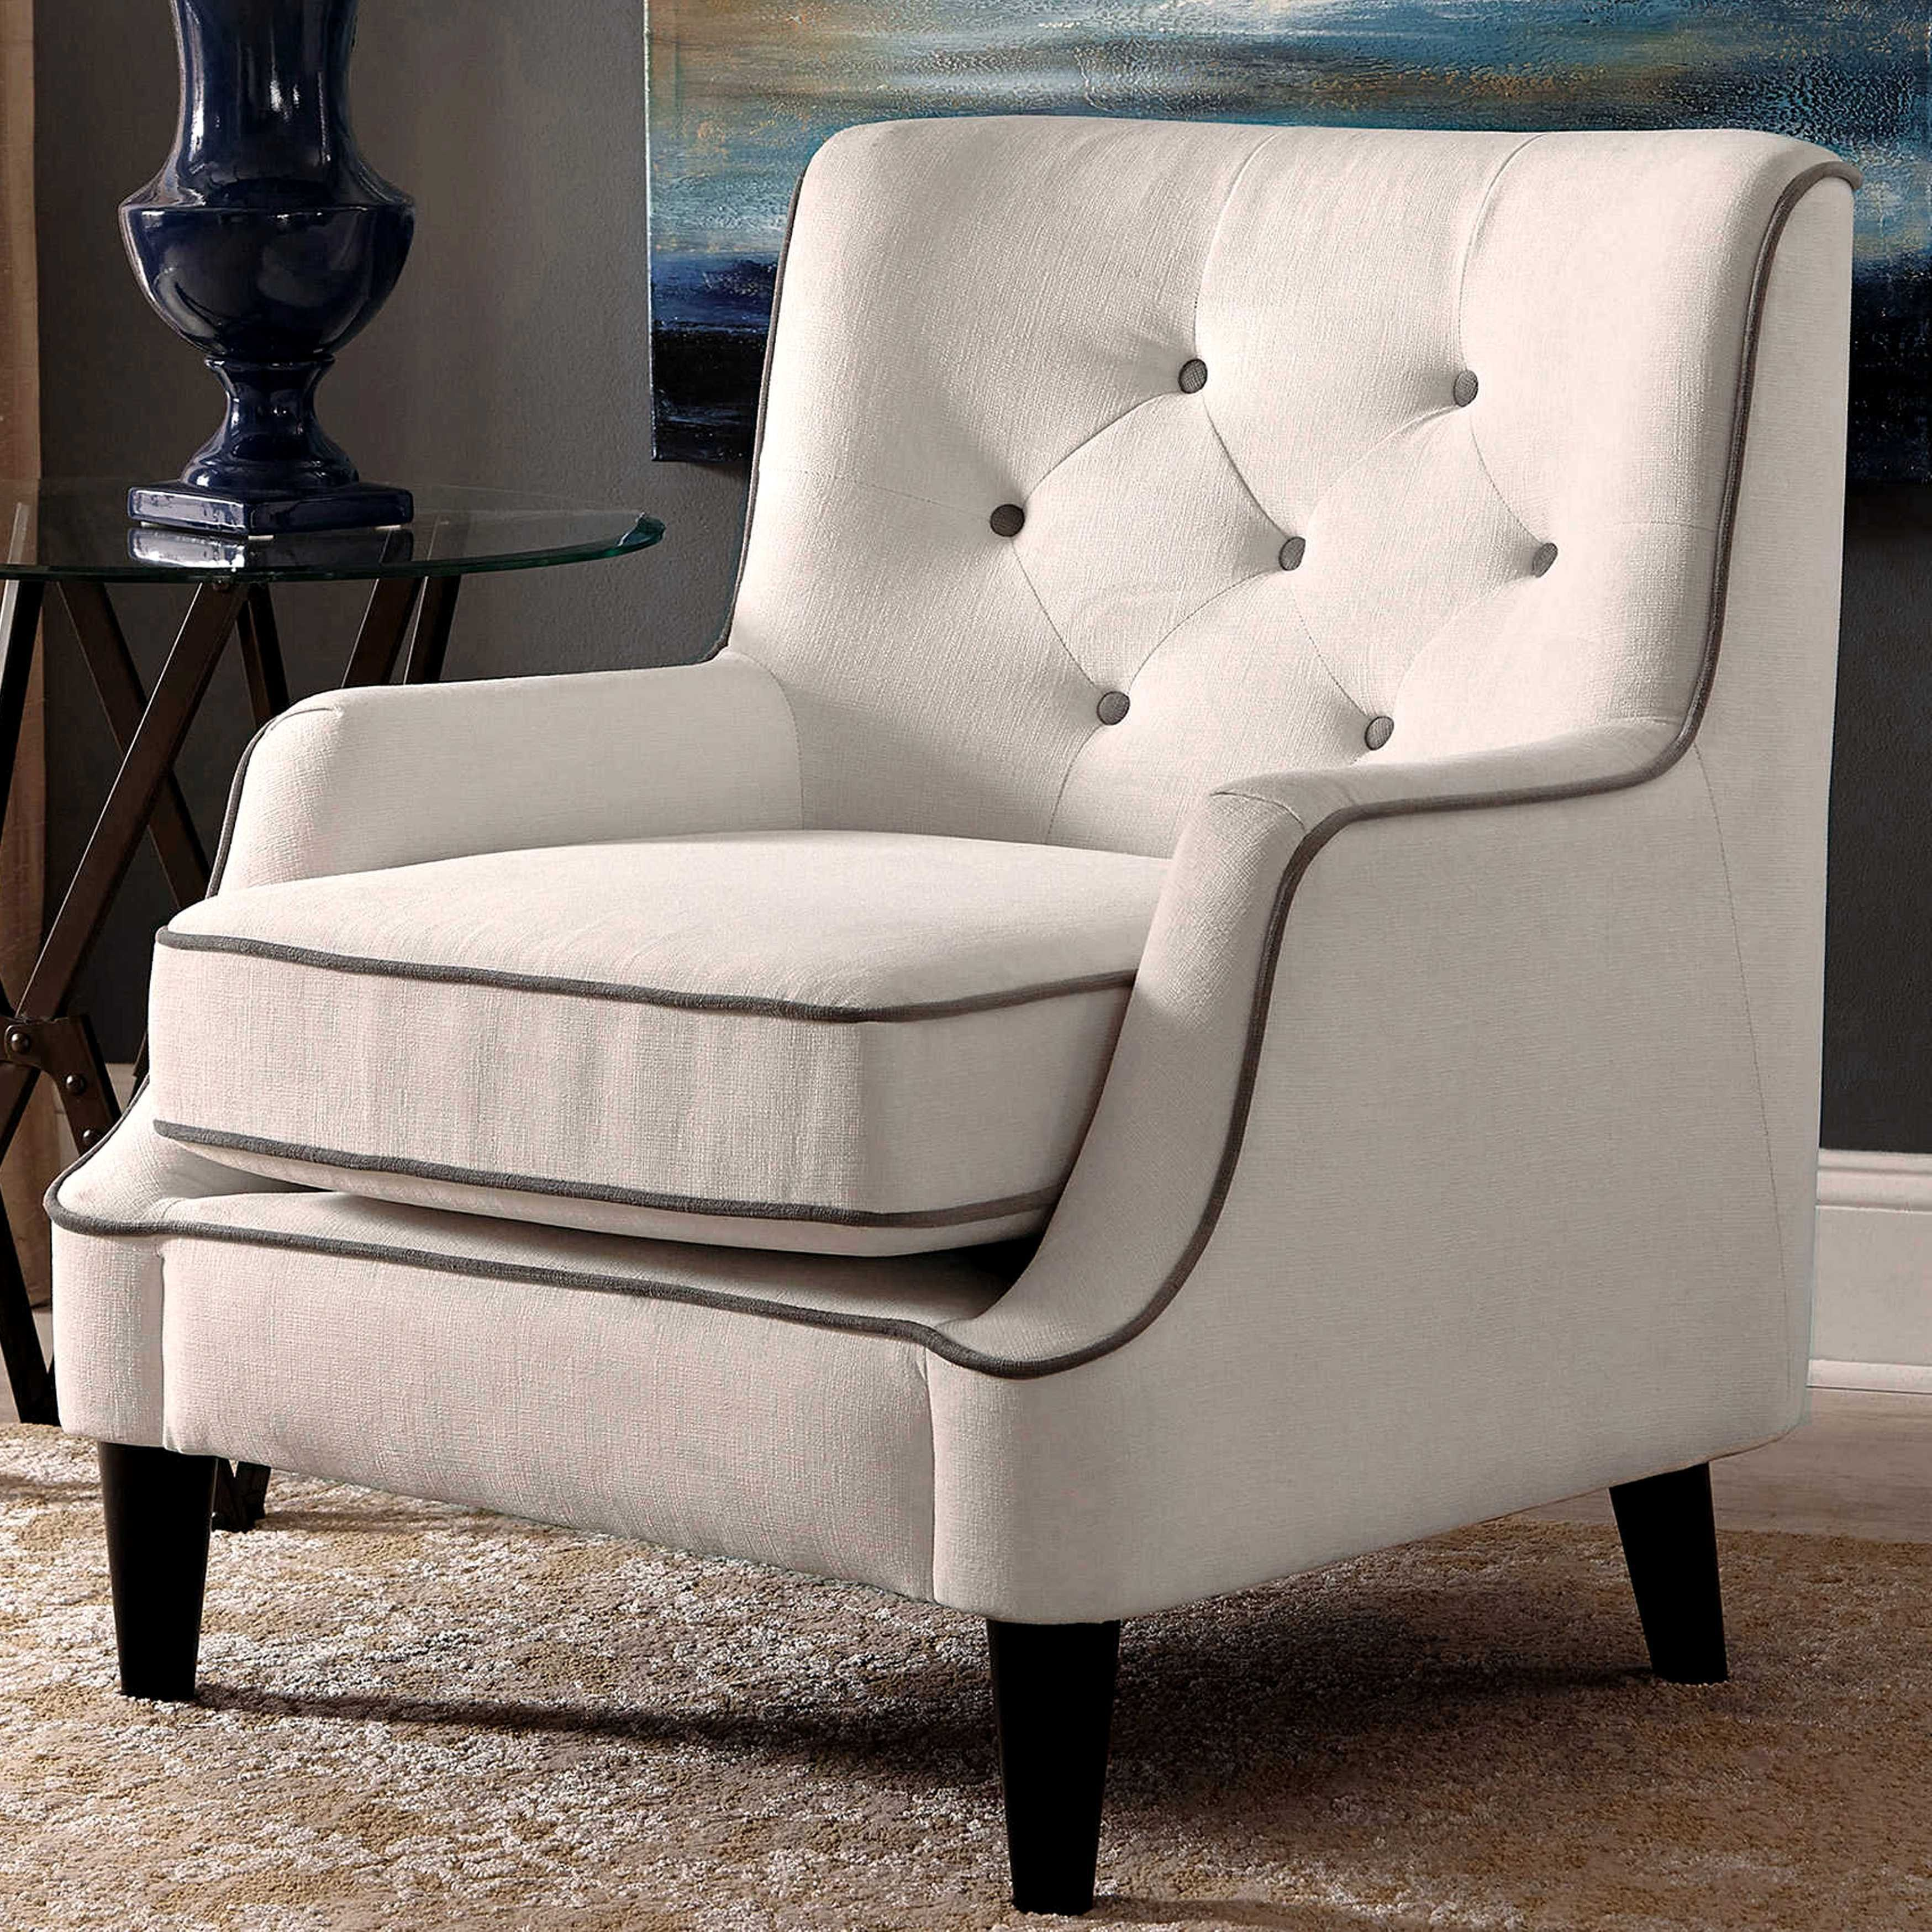 Superb Button Tufted Design Living Room Accent Chair With Contrast Bralicious Painted Fabric Chair Ideas Braliciousco